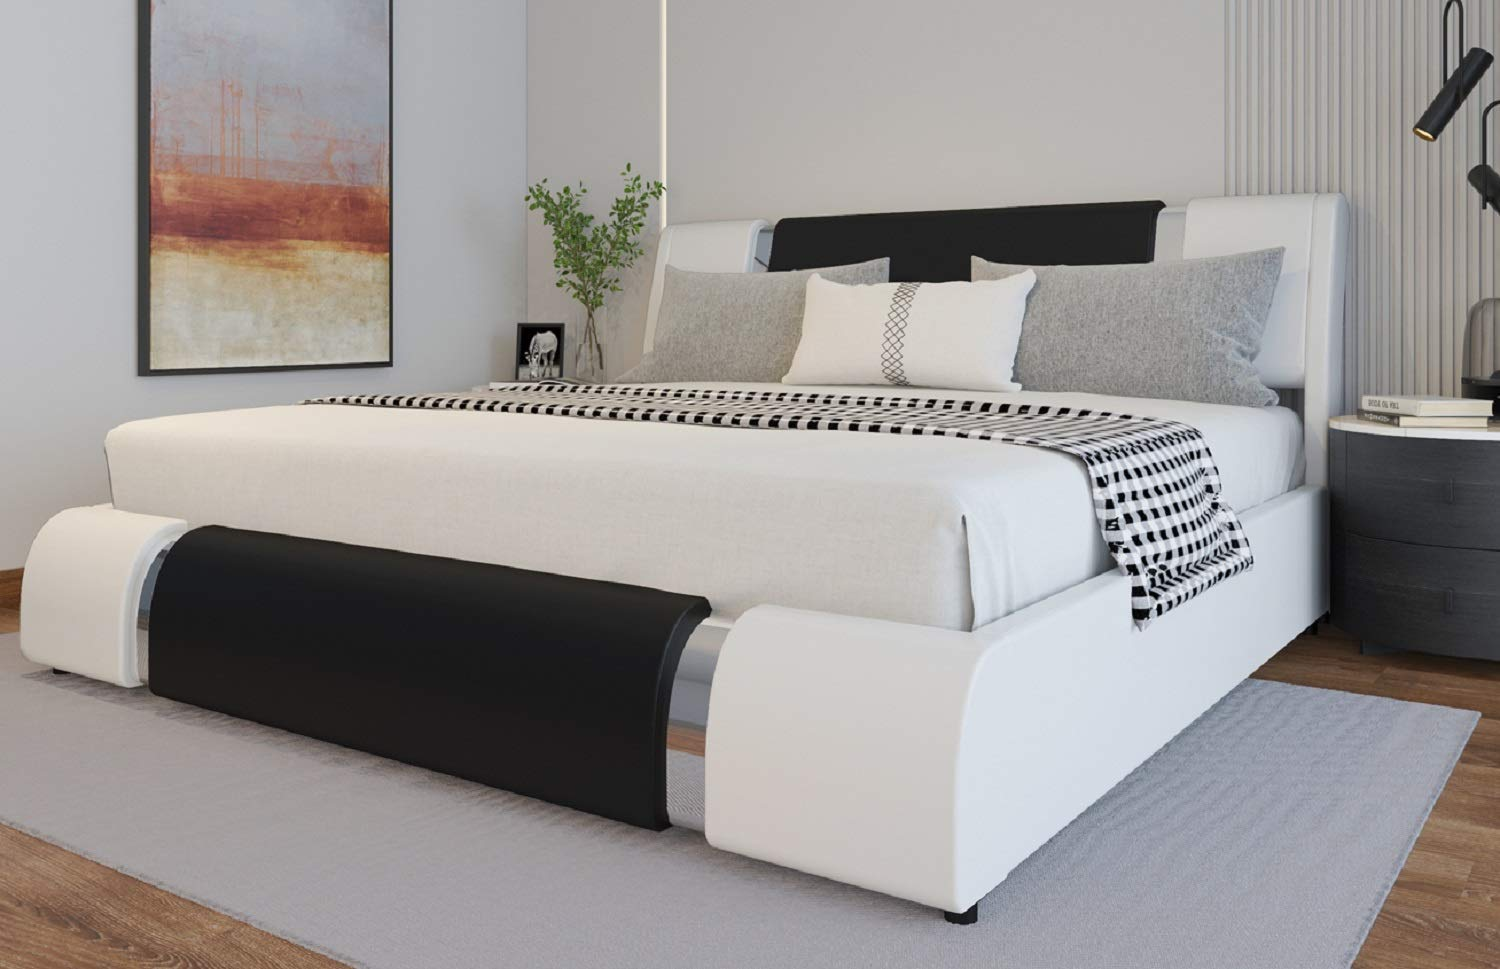 Sponsored Ad - Amolife Iron Piece Bed Frame/Deluxe Solid Upholstered Modern Bed Frame/Mattress Foundation, Black with Whit...